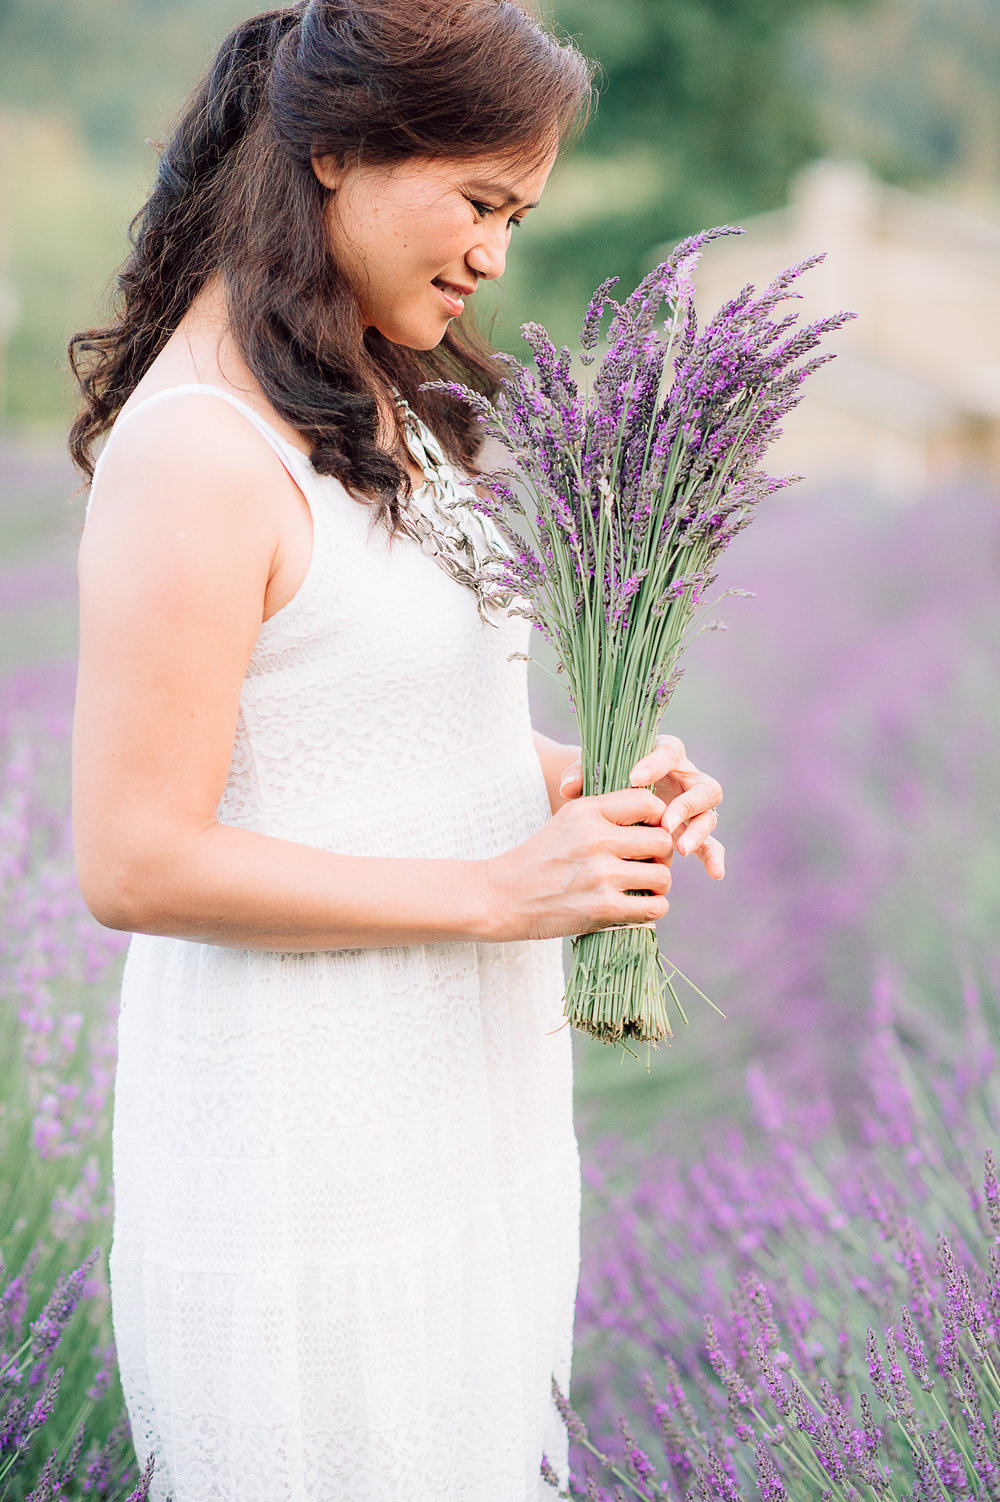 engagement_lavenderfield_youseephotography_LidiaOtto (75).jpg